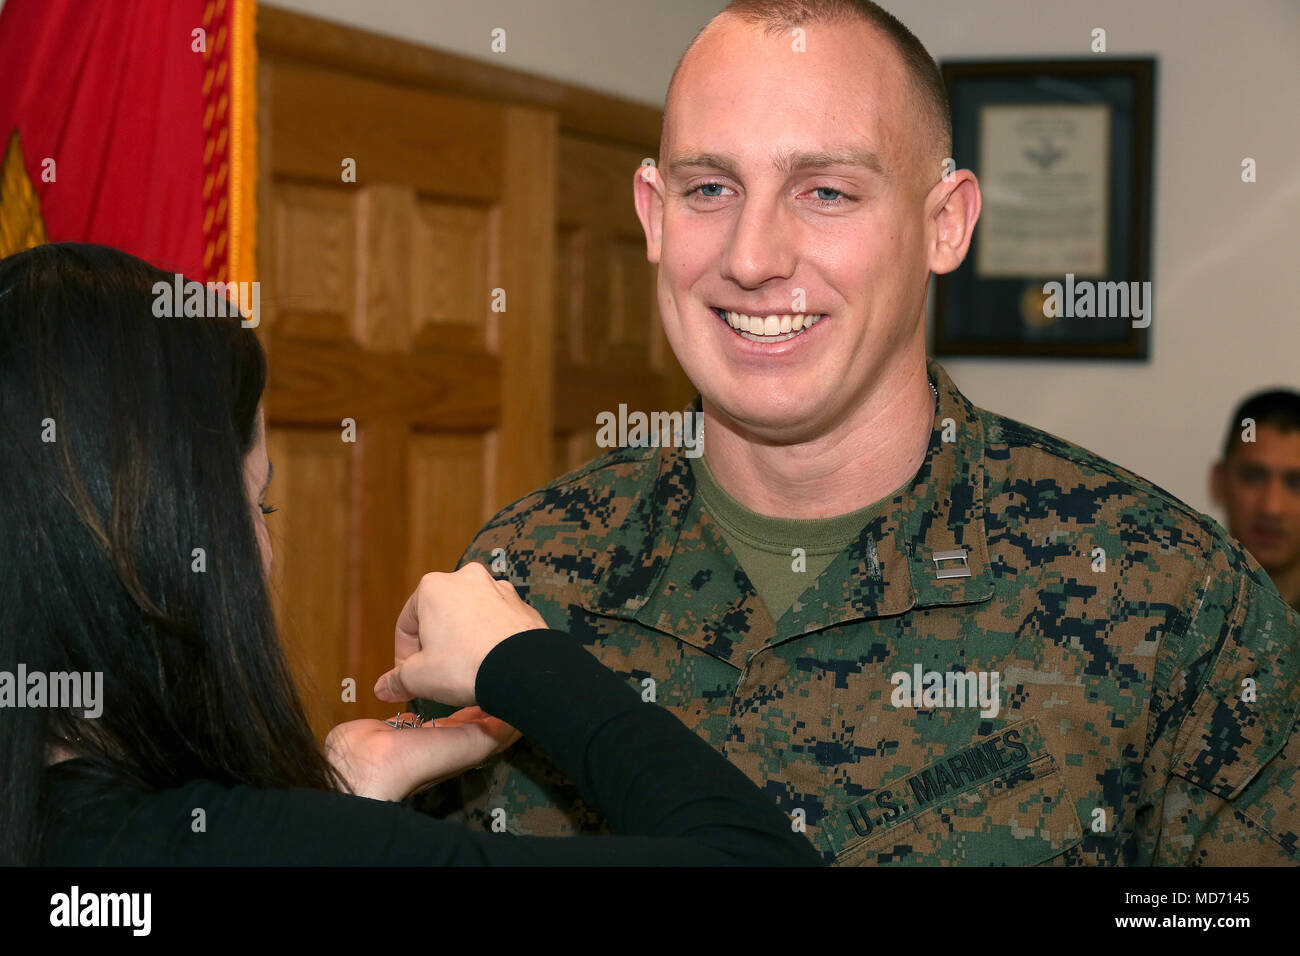 marrying a marine at 19